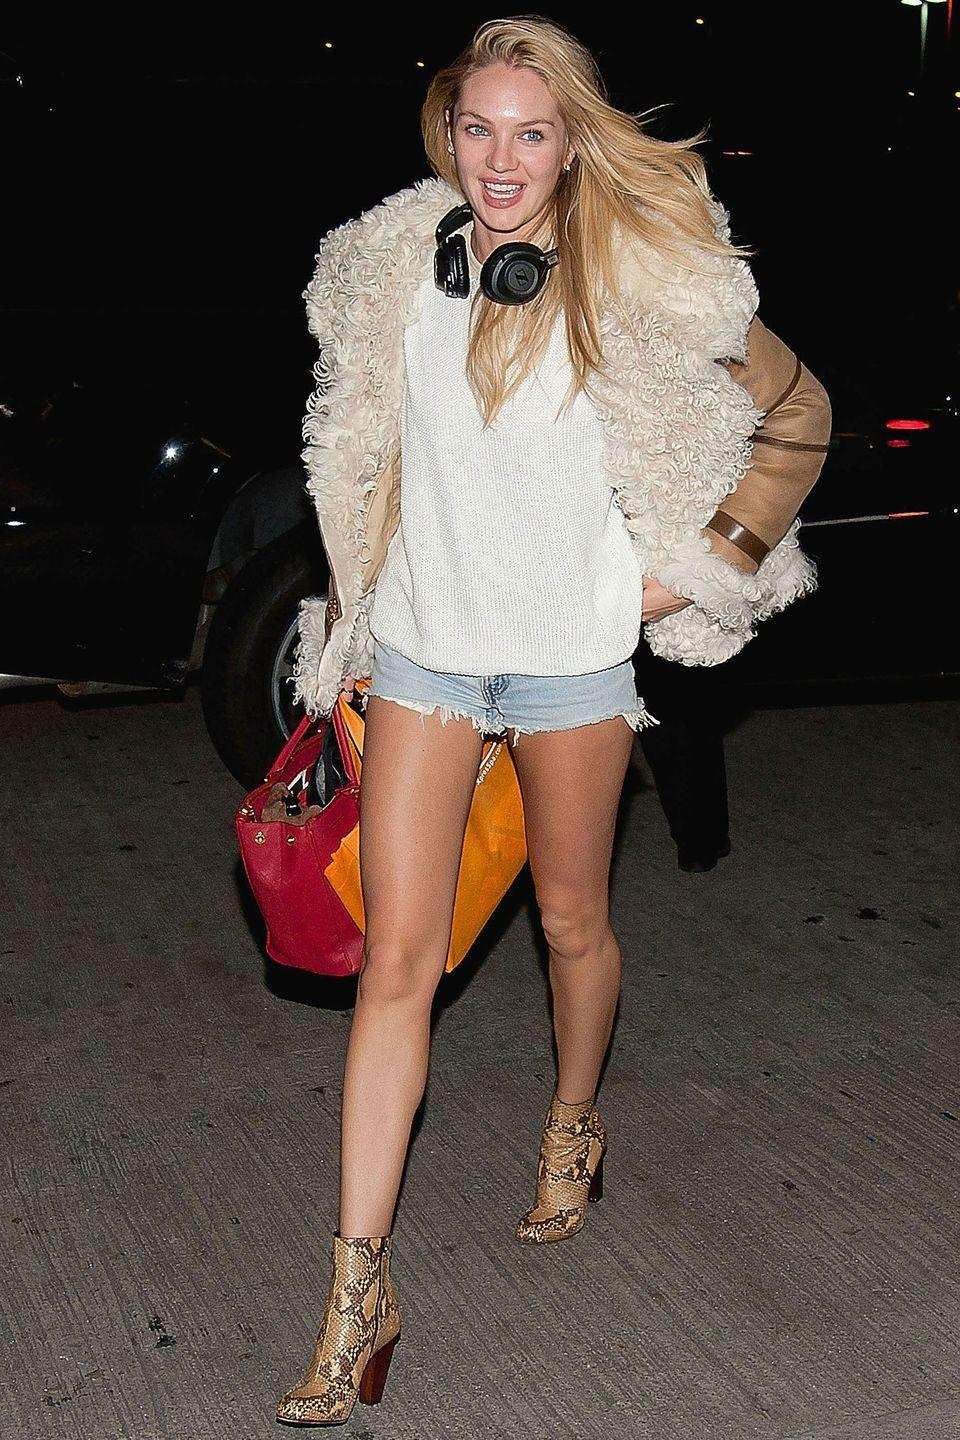 <p><strong>Candice Swanepoel, 2012: </strong>Shearling and short shorts. If she's trying to confuse us about where she's heading, it's working. </p>